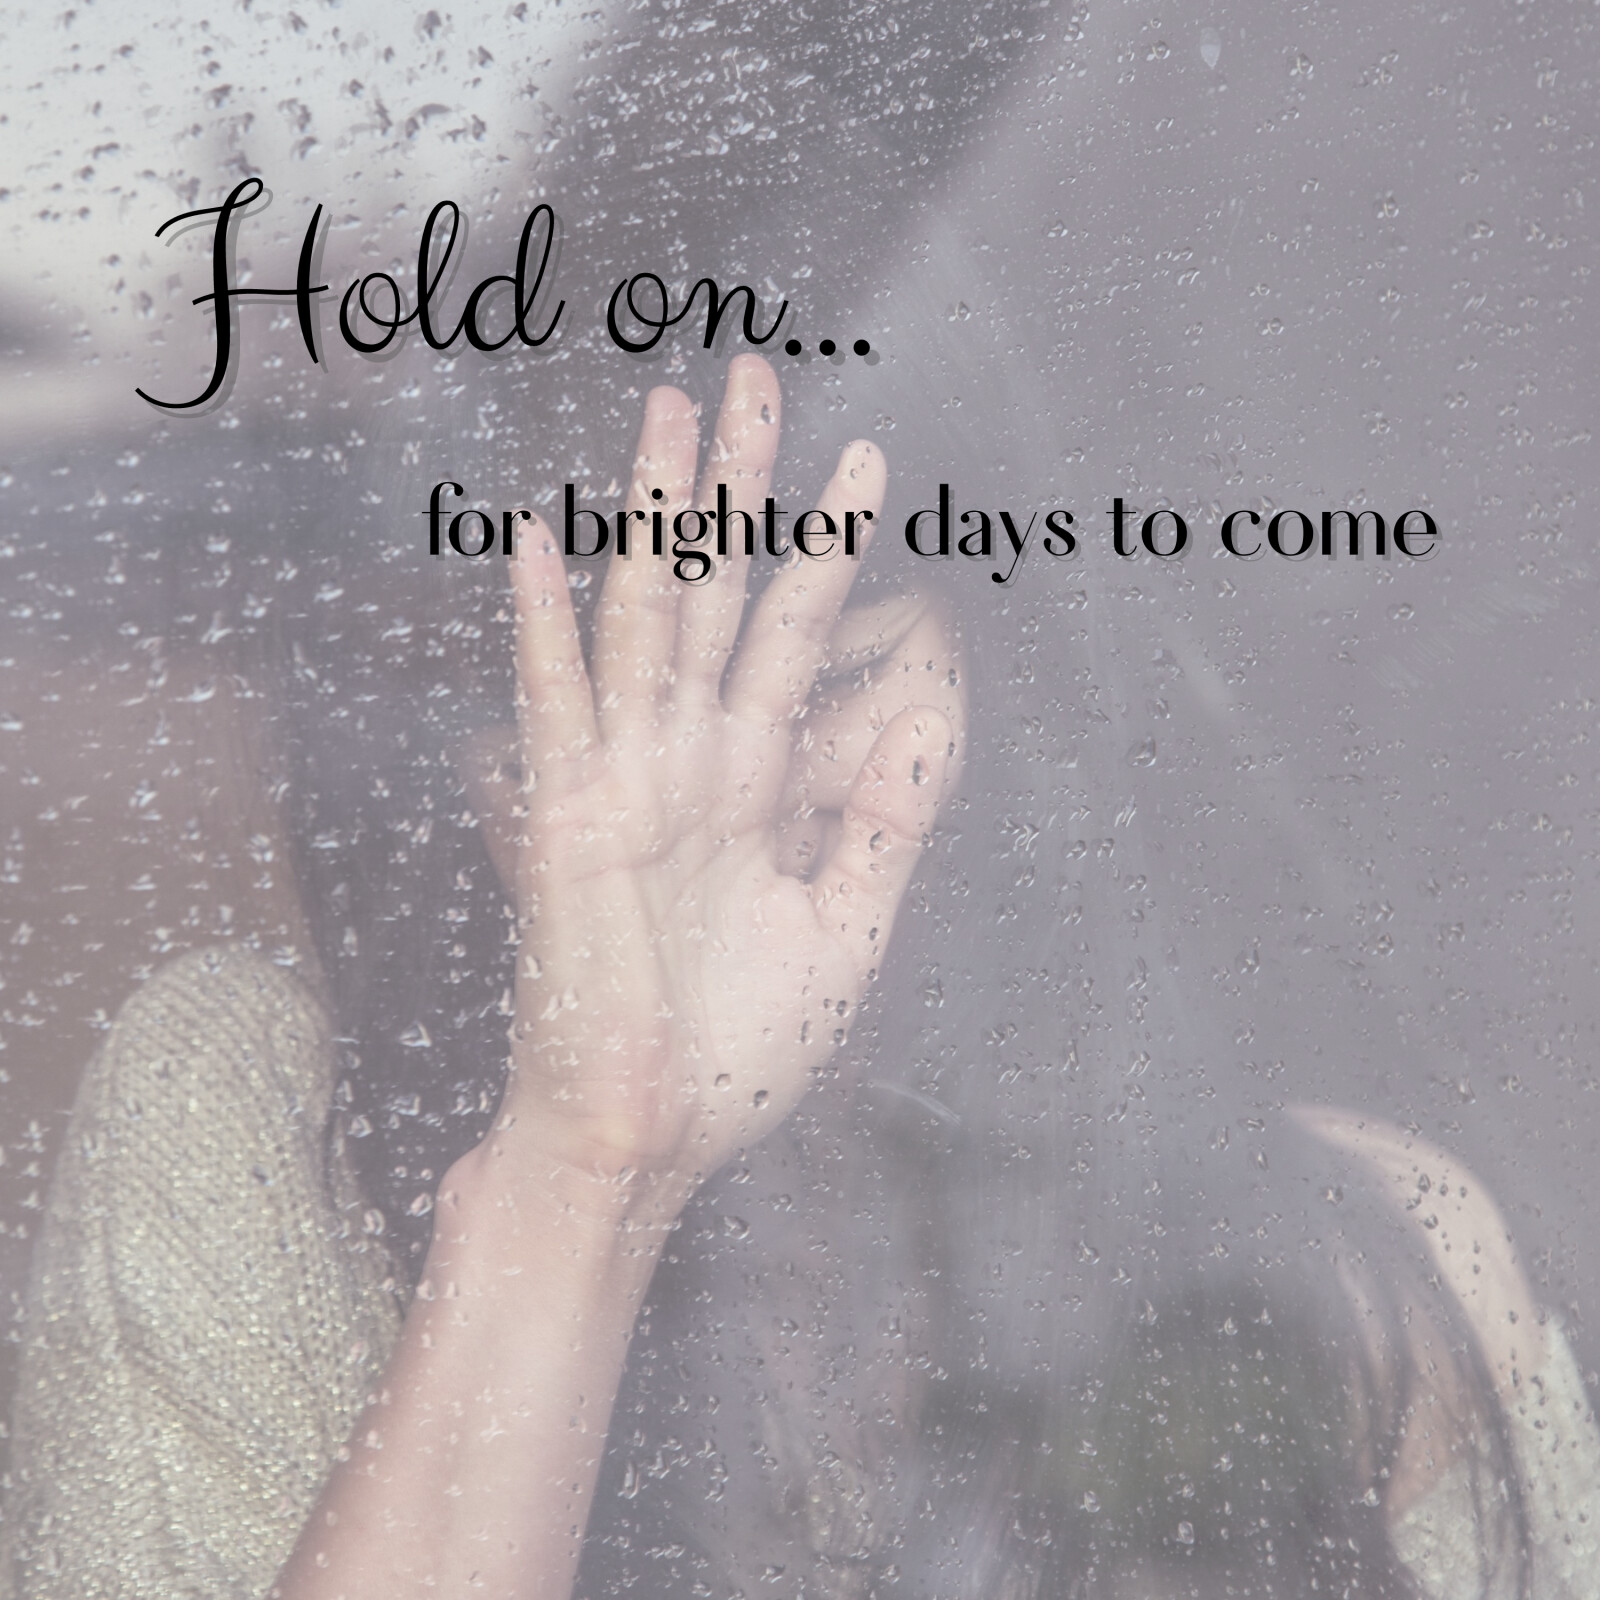 Hold on...for brighter days to come